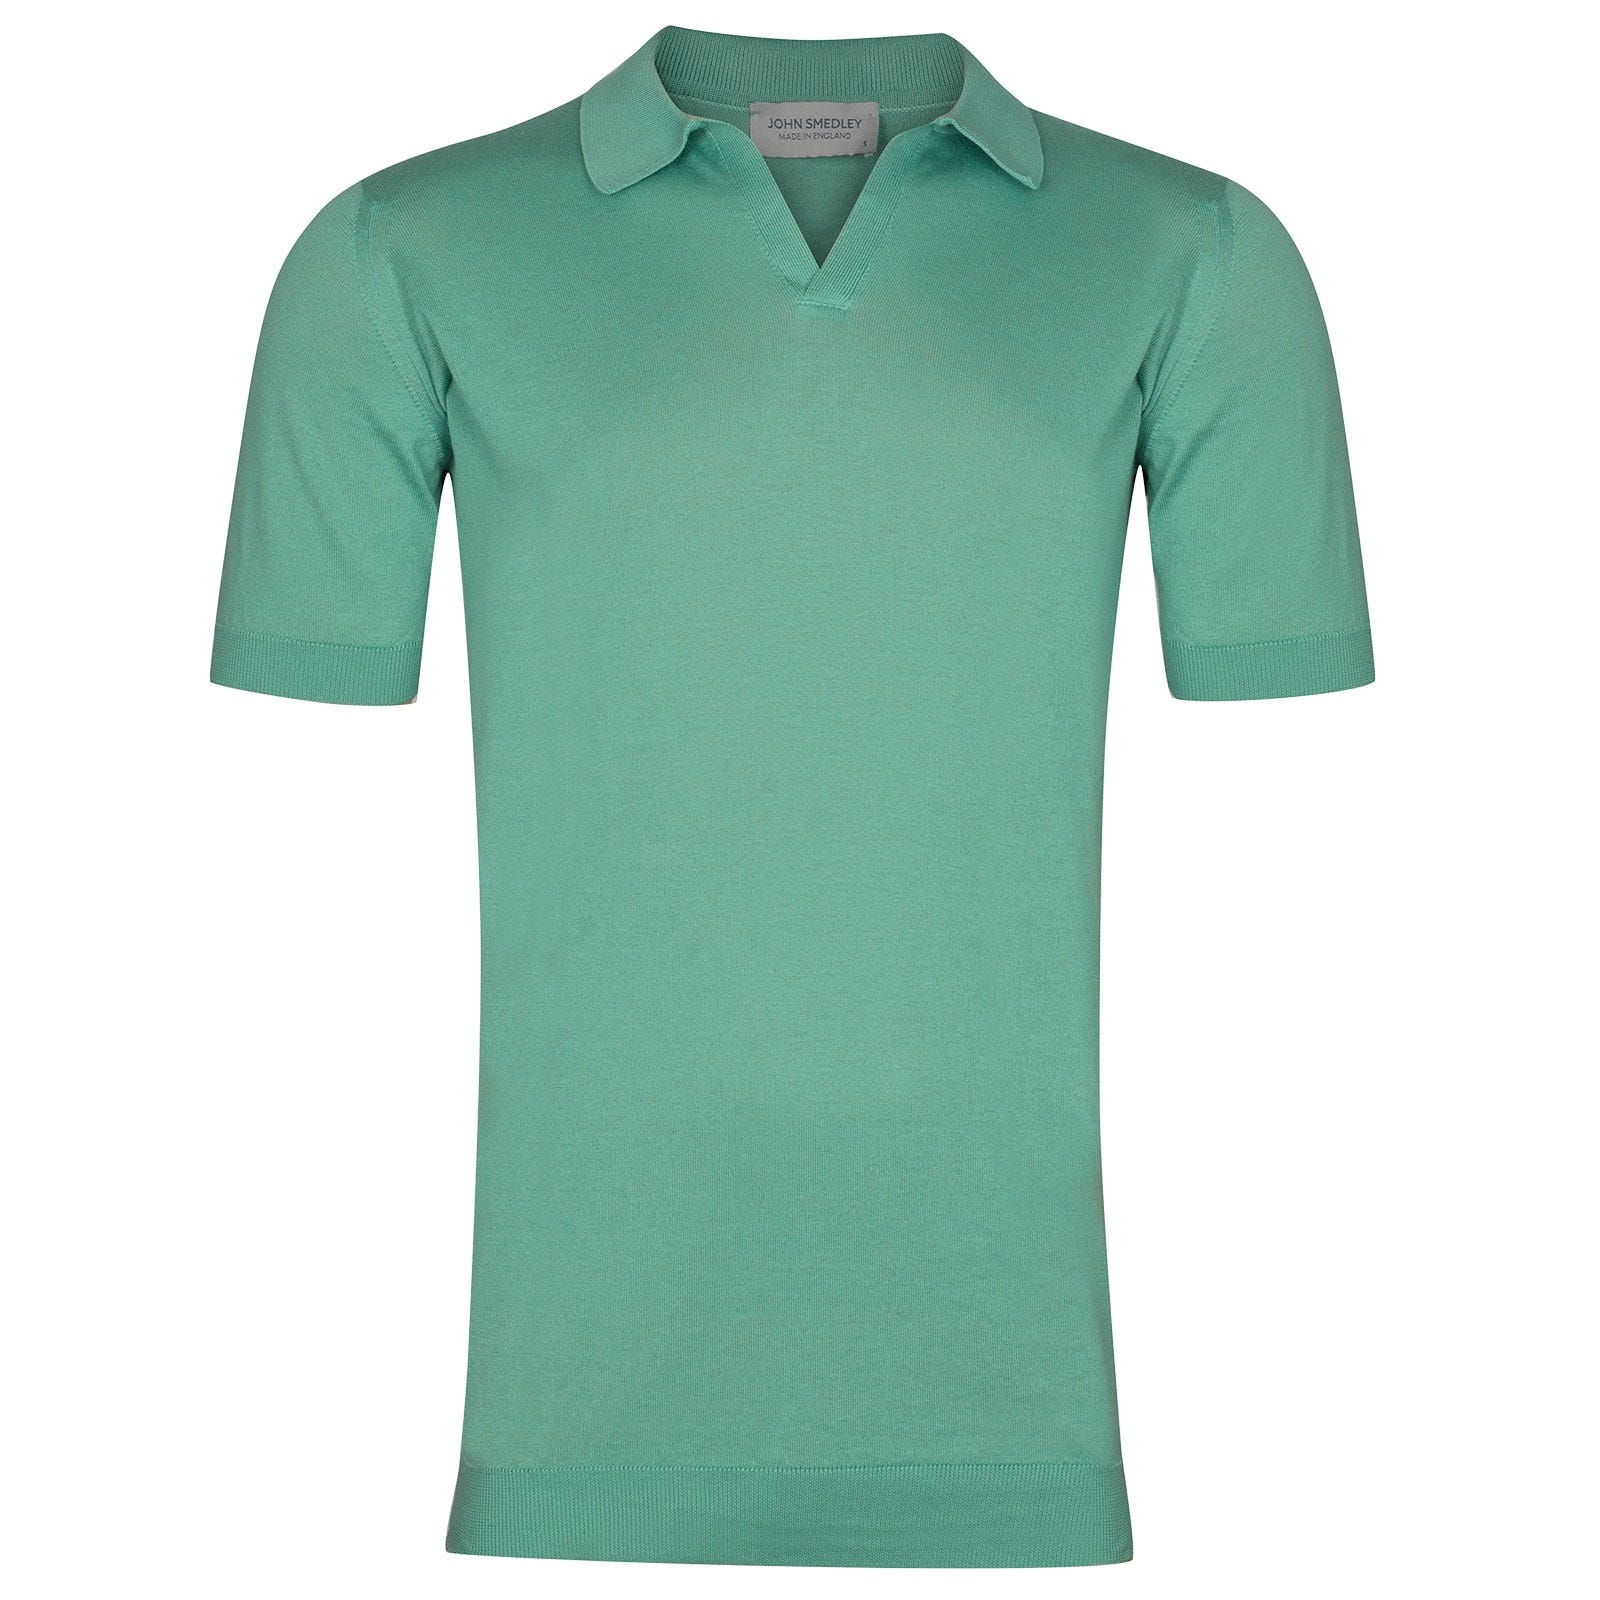 John Smedley Noah Sea Island Cotton Shirt in Reflective Aqua-XXL